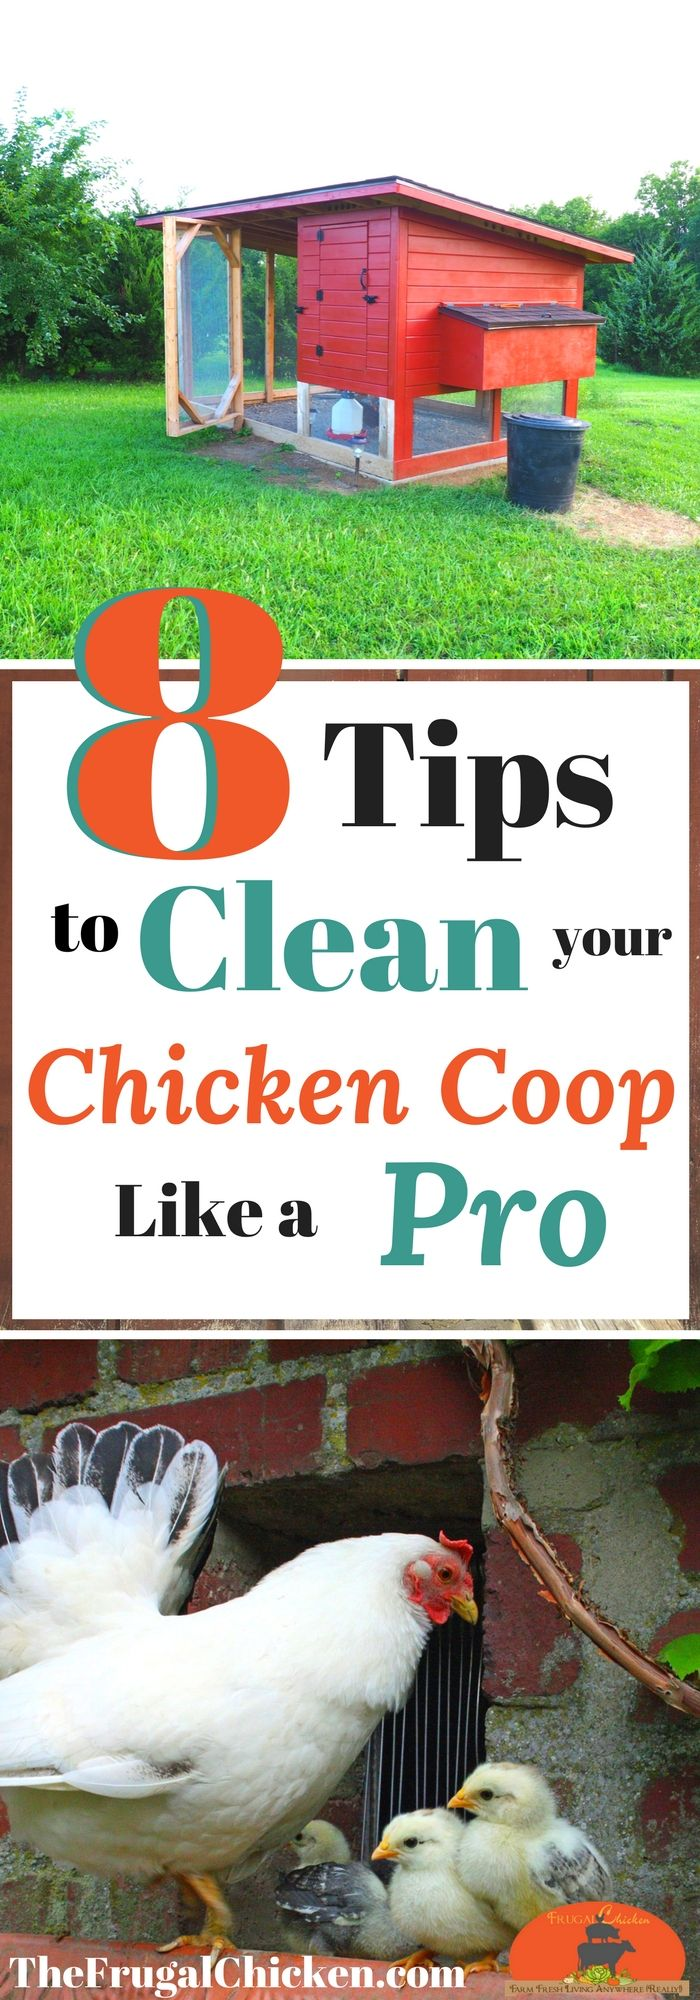 Chickens poop and you have to clean it up! Here's pro tips to get your coop super clean!